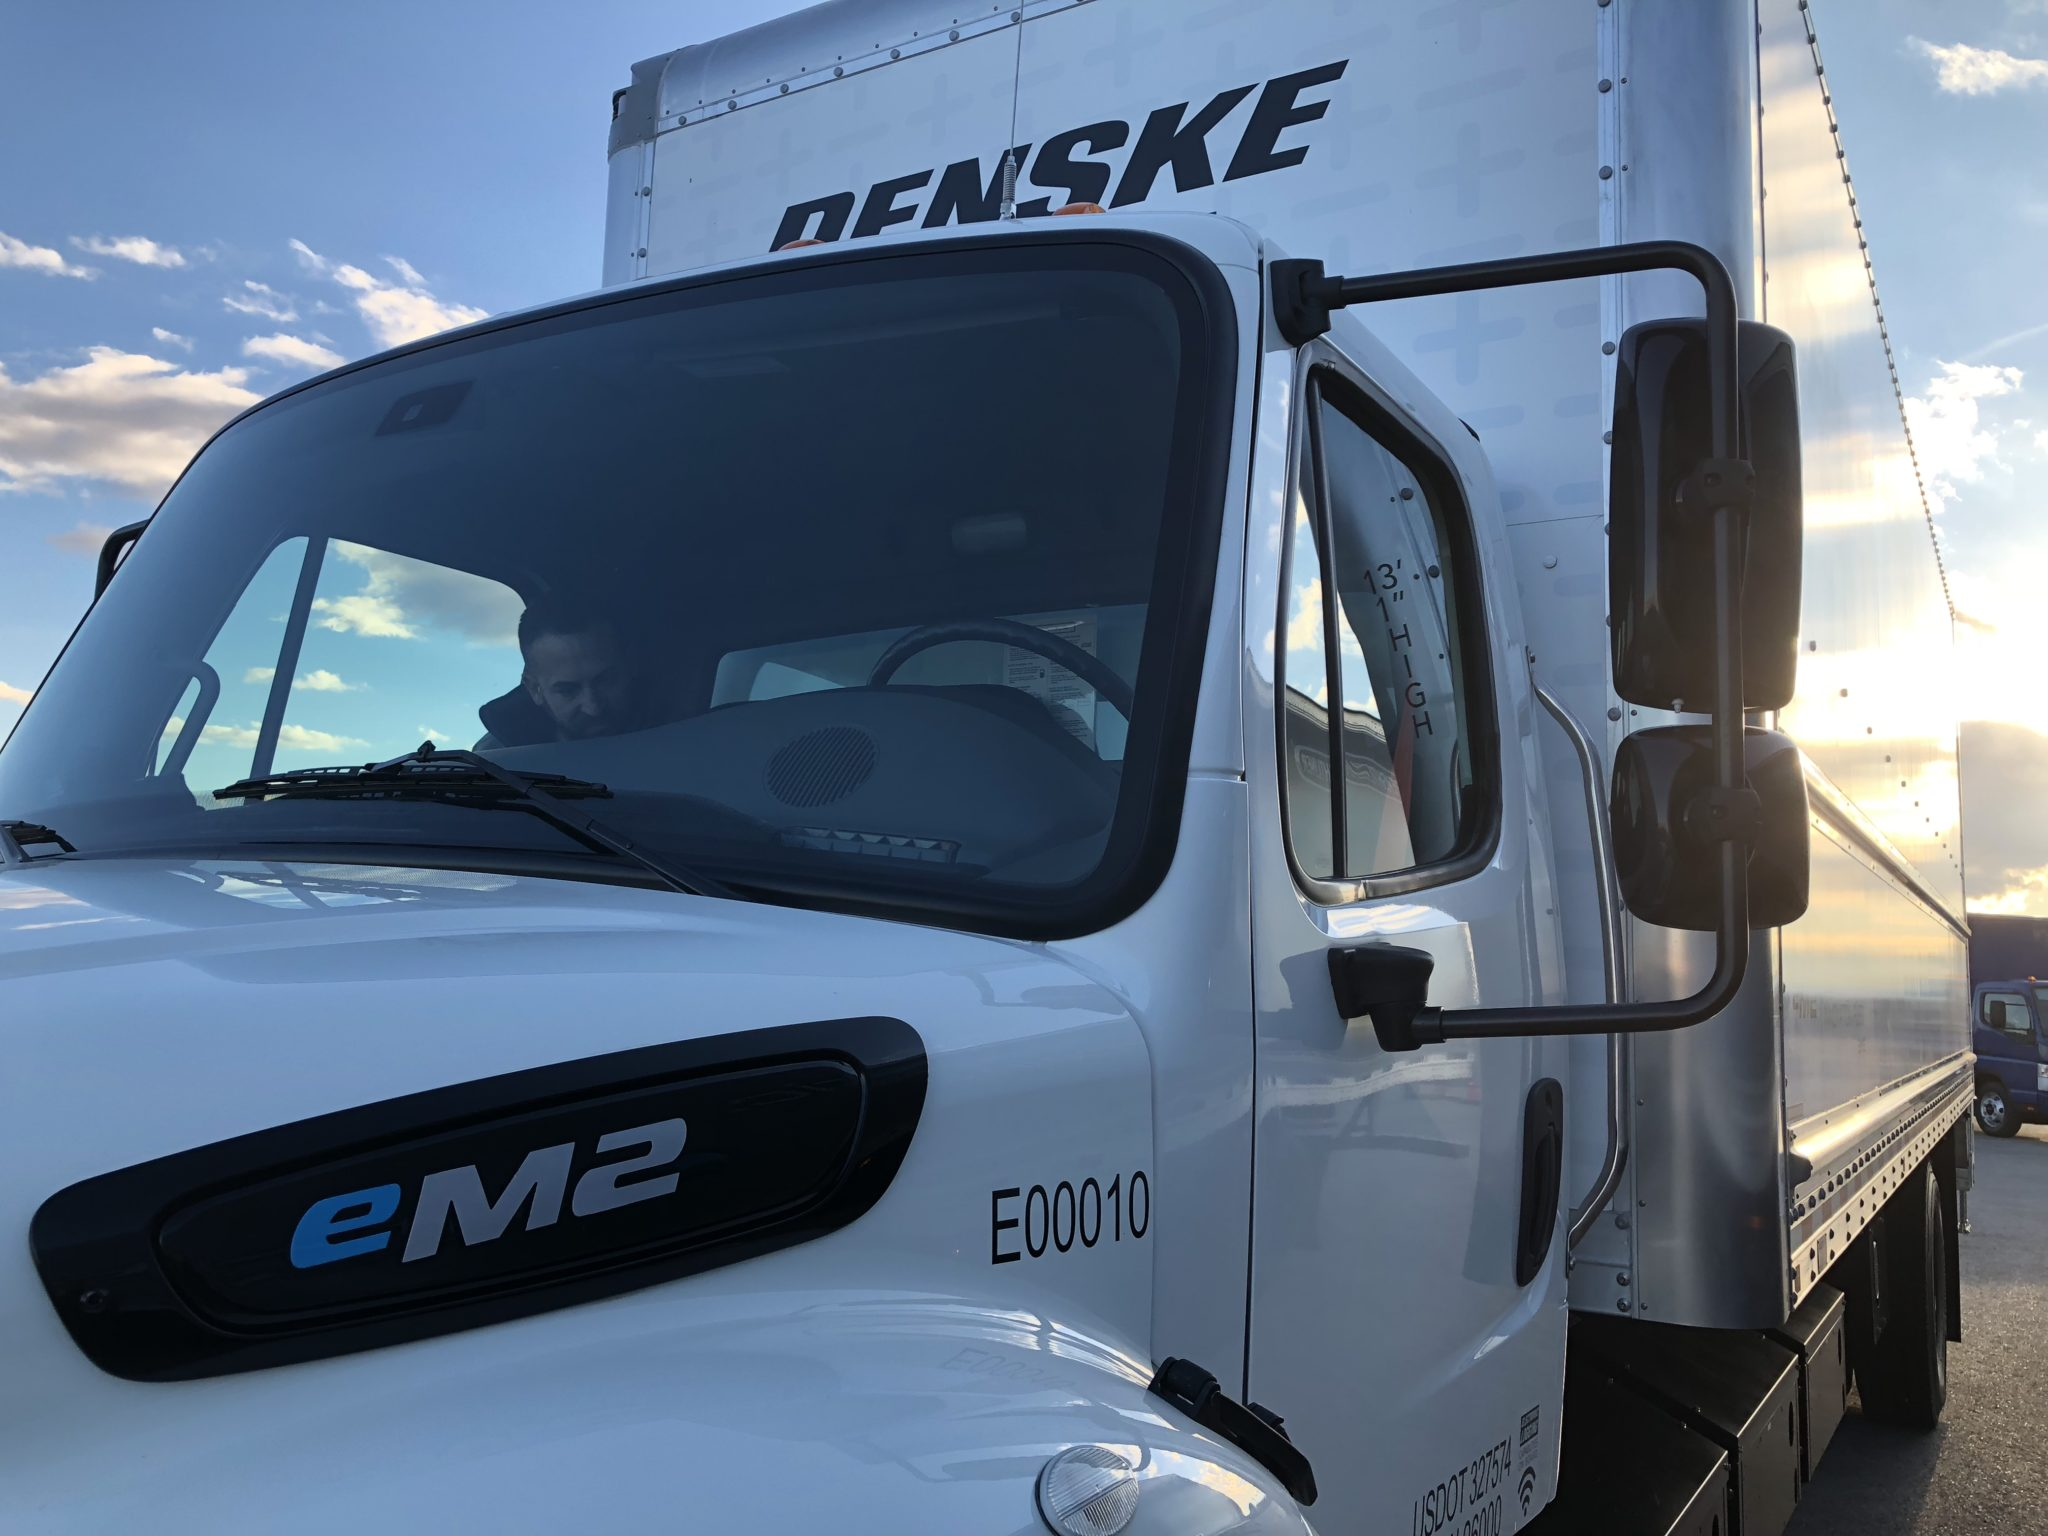 Freightliner co-creating electric vehicles with customers